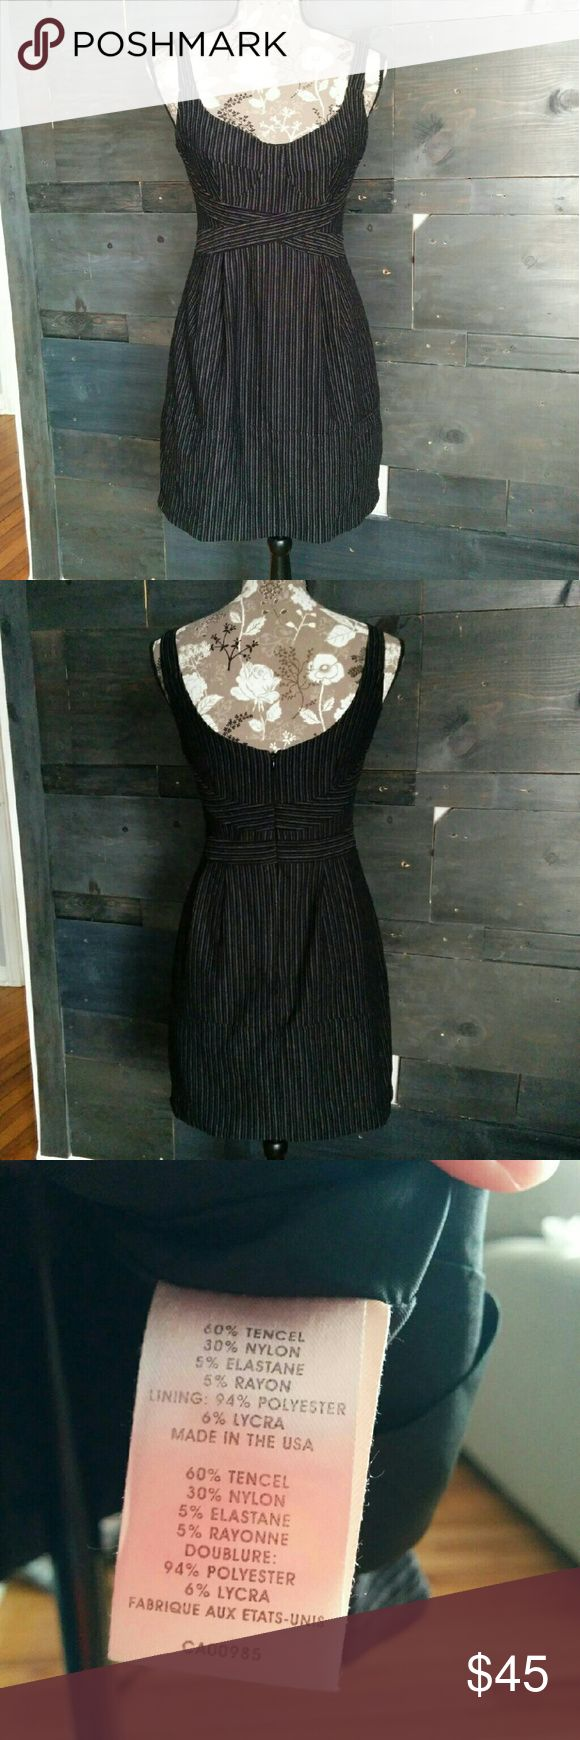 Nanette Lepore striped dress Beautiful sleeveless gray mini dress with vertical stripes. Fully lined with a zipper in the back. Made in the USA. Nanette Lepore Dresses Mini